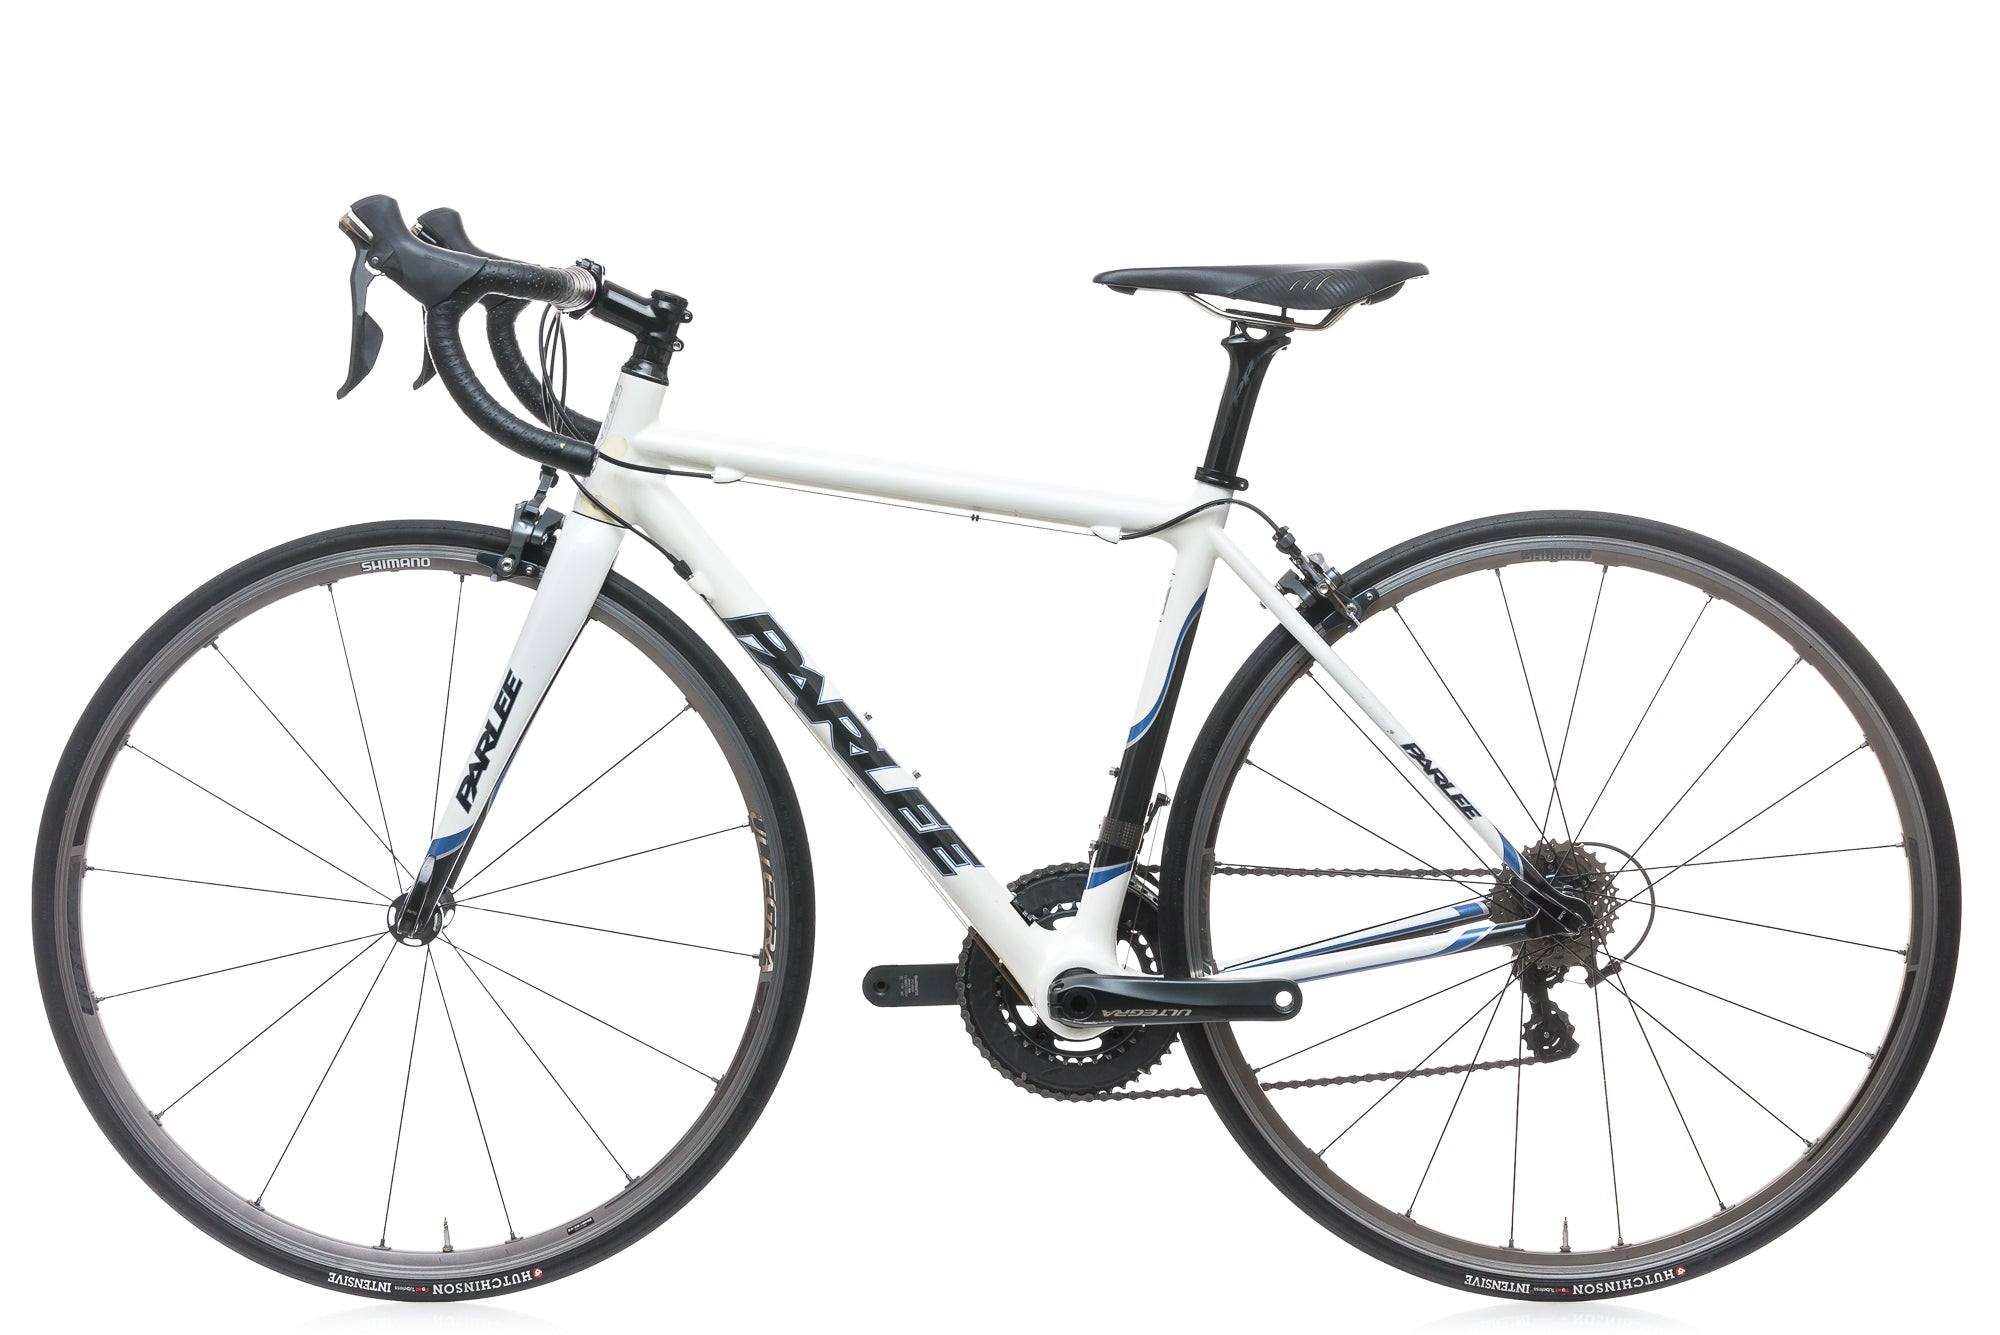 Parlee Z5 X-Small (Tall) Bike - 2012